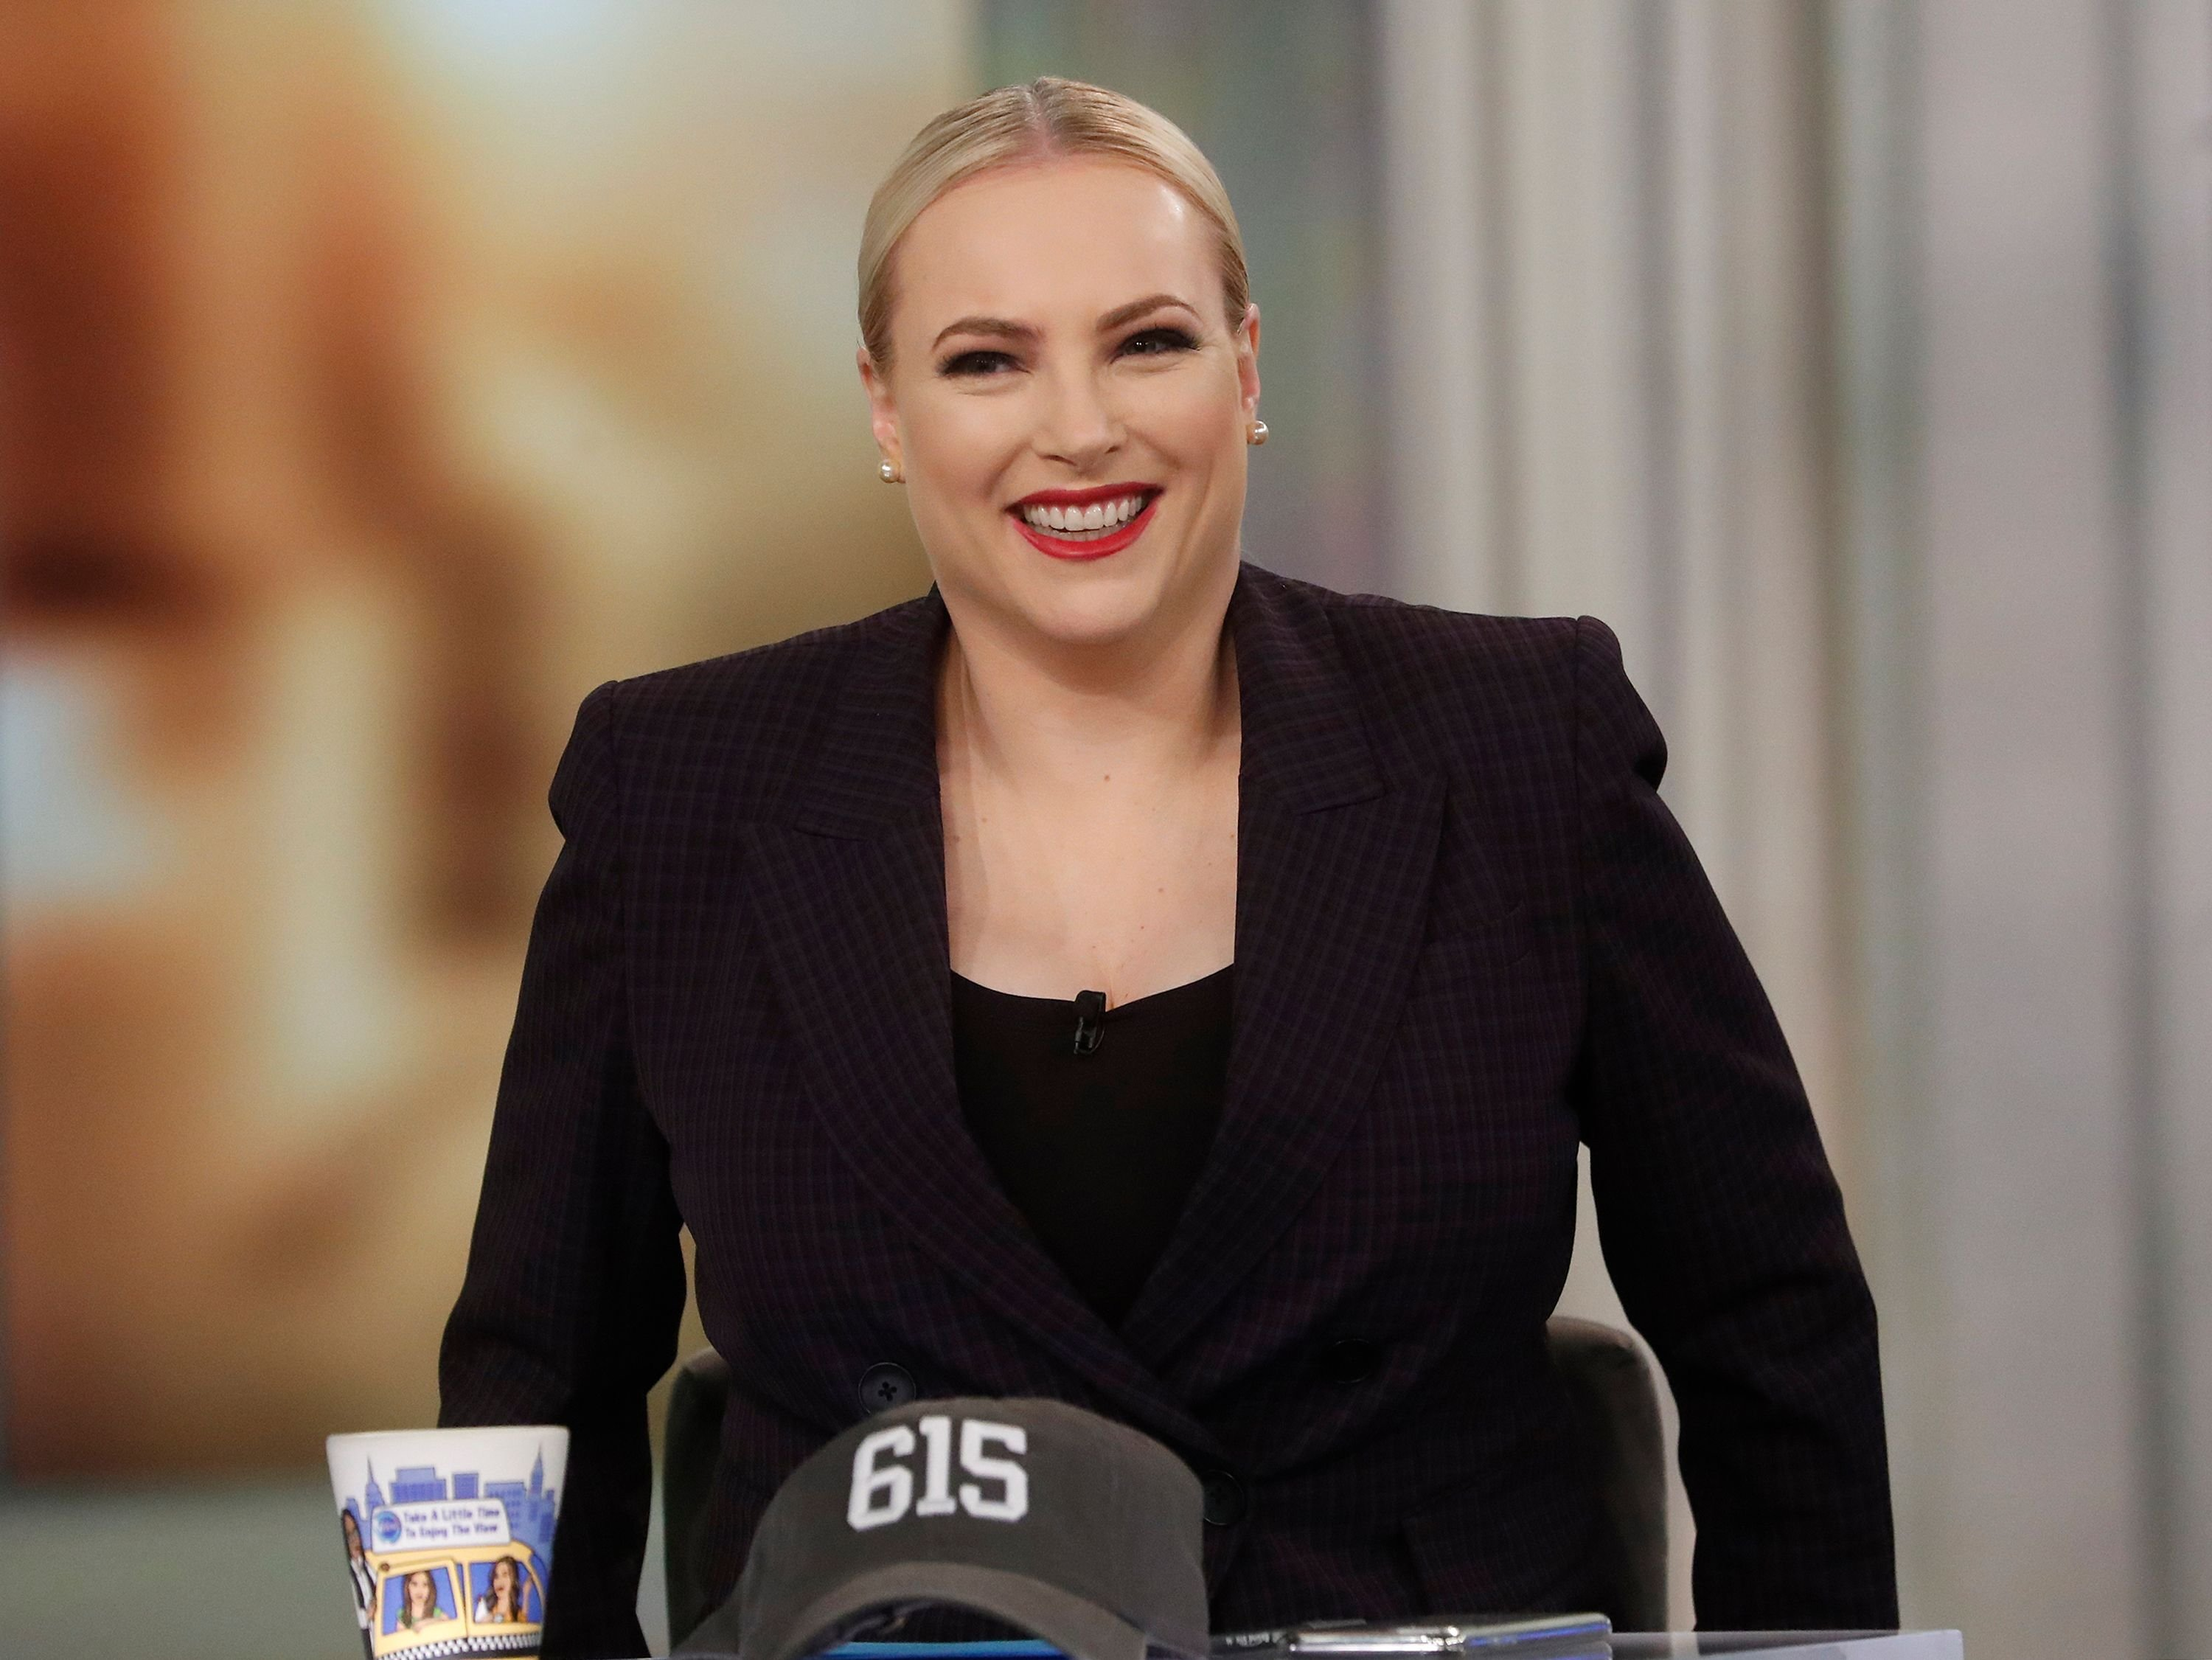 """Meghan McCain during an episode of """"The View"""" on Wednesday, March 11, 2020 